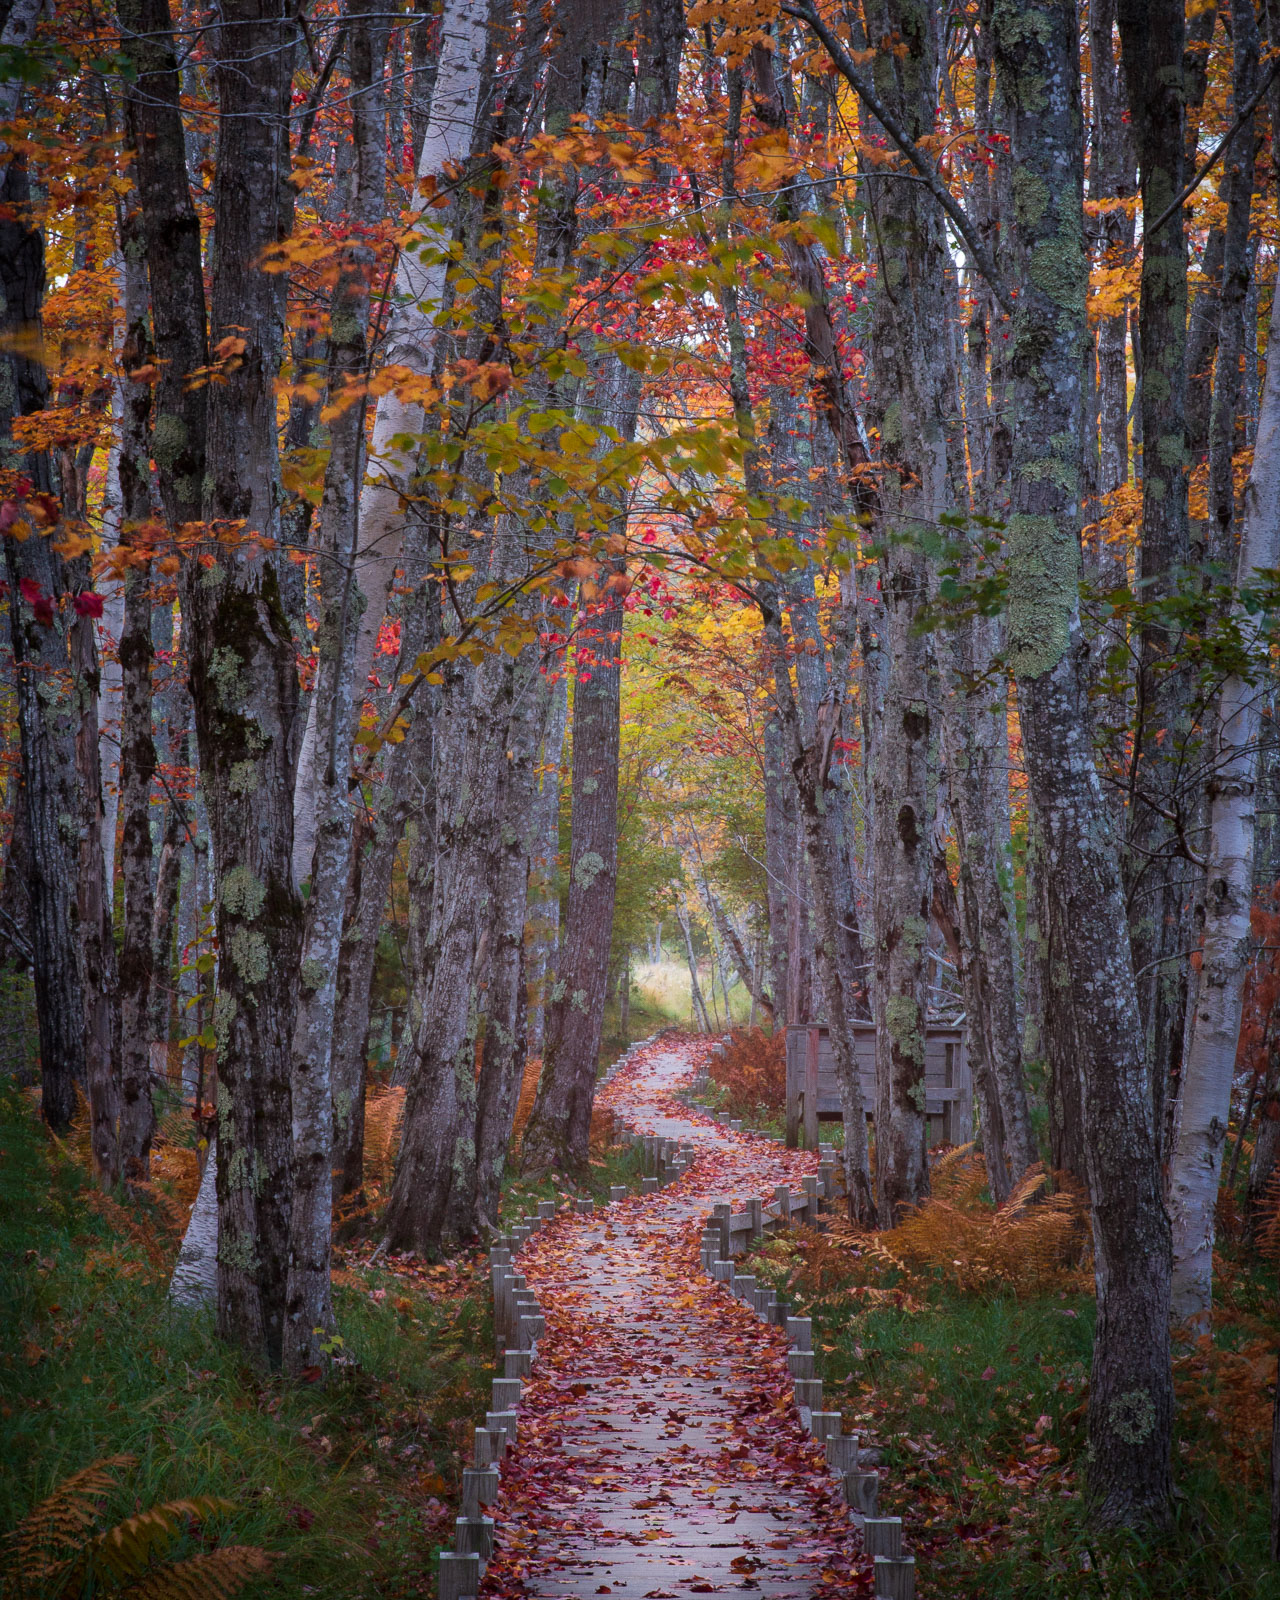 The jessup Path winds through the woodlands of Sieur de Monts in Acadia National PArk.